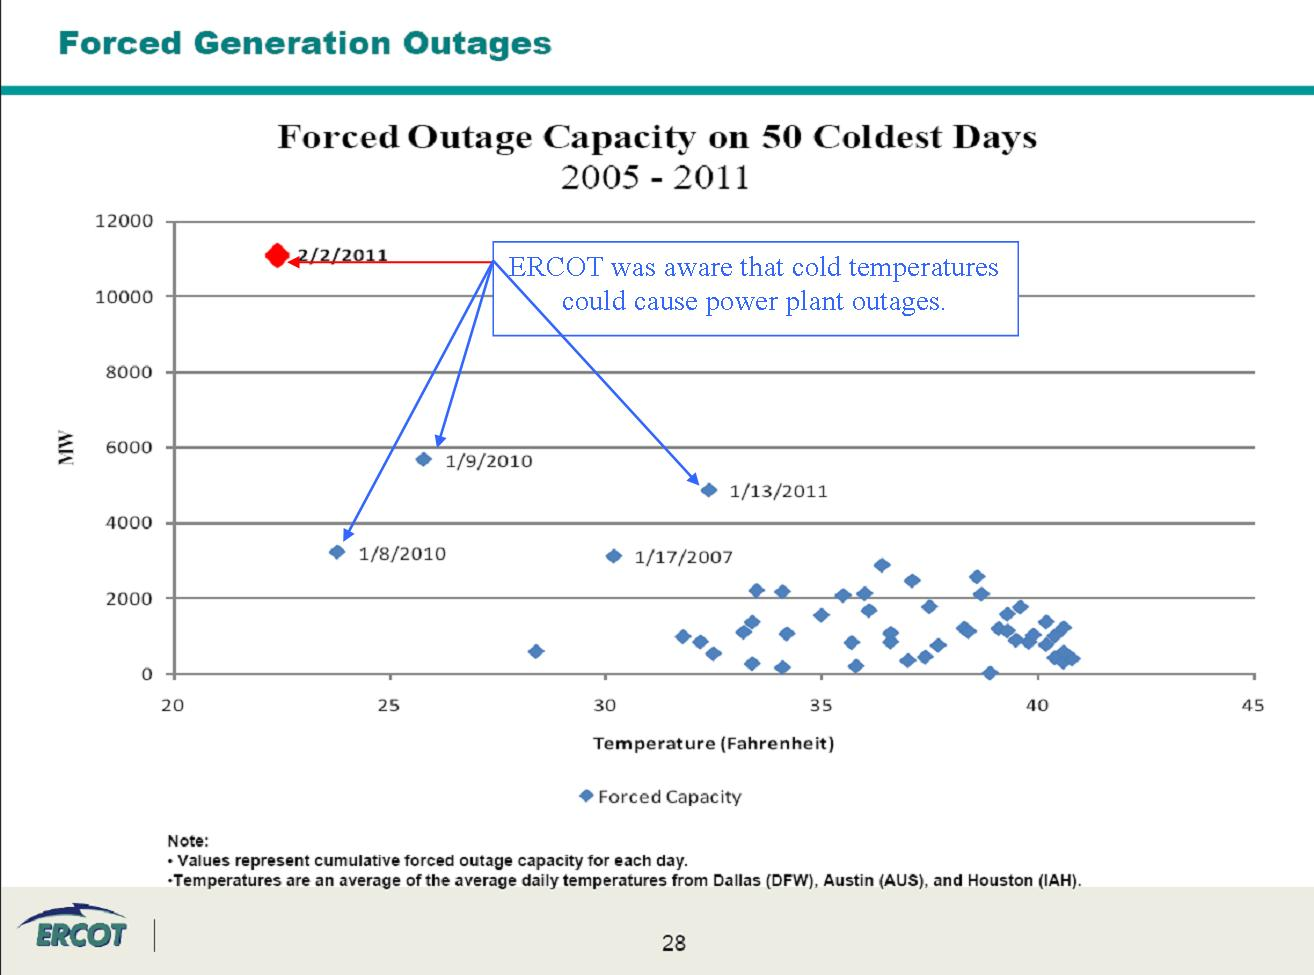 ERCOT Forced Generation Outages